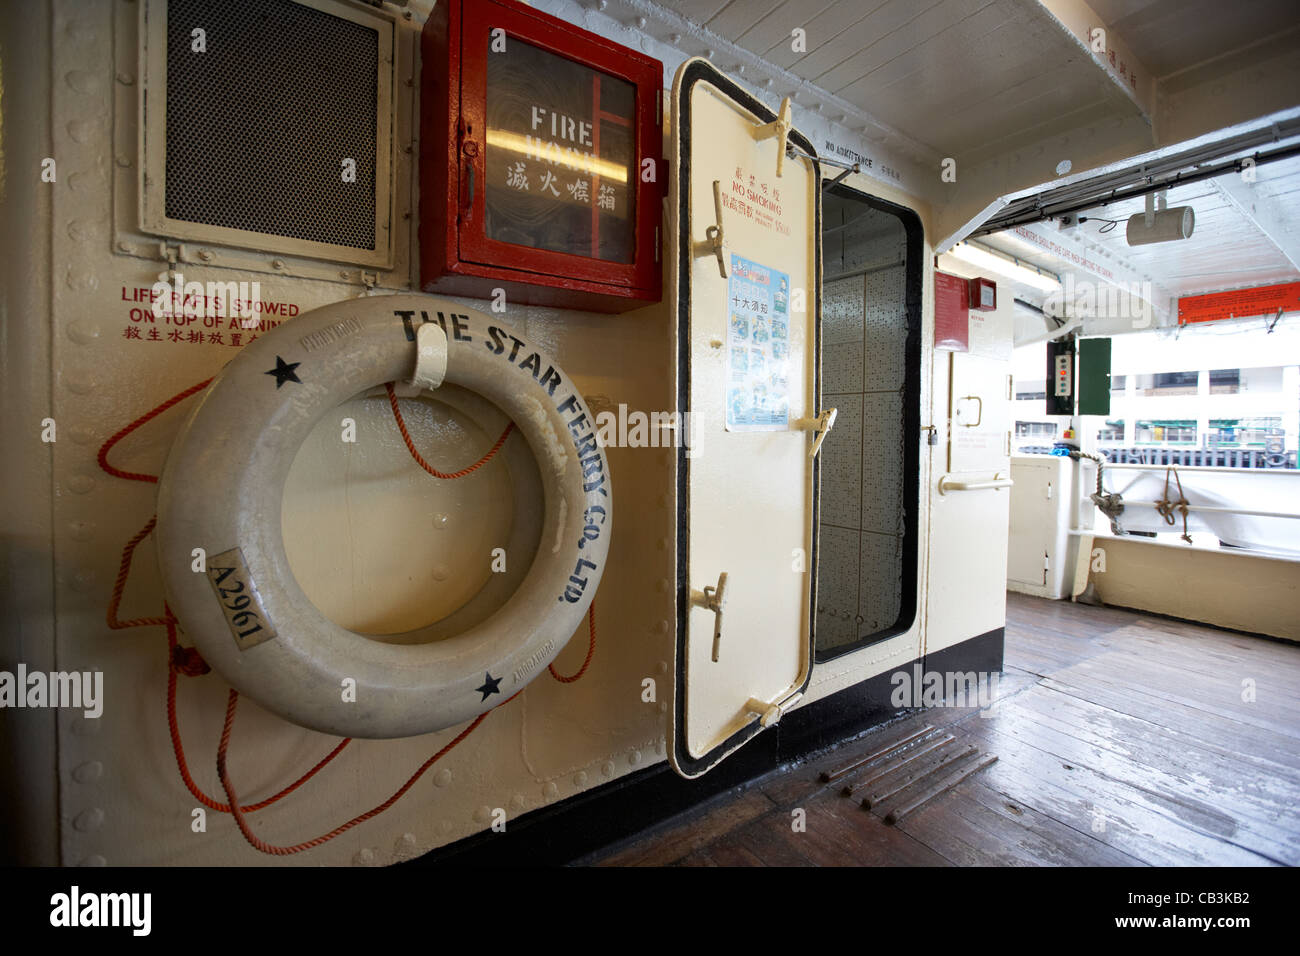 lifebelt fire hose and crew hatch on star ferry hong kong island hksar china - Stock Image